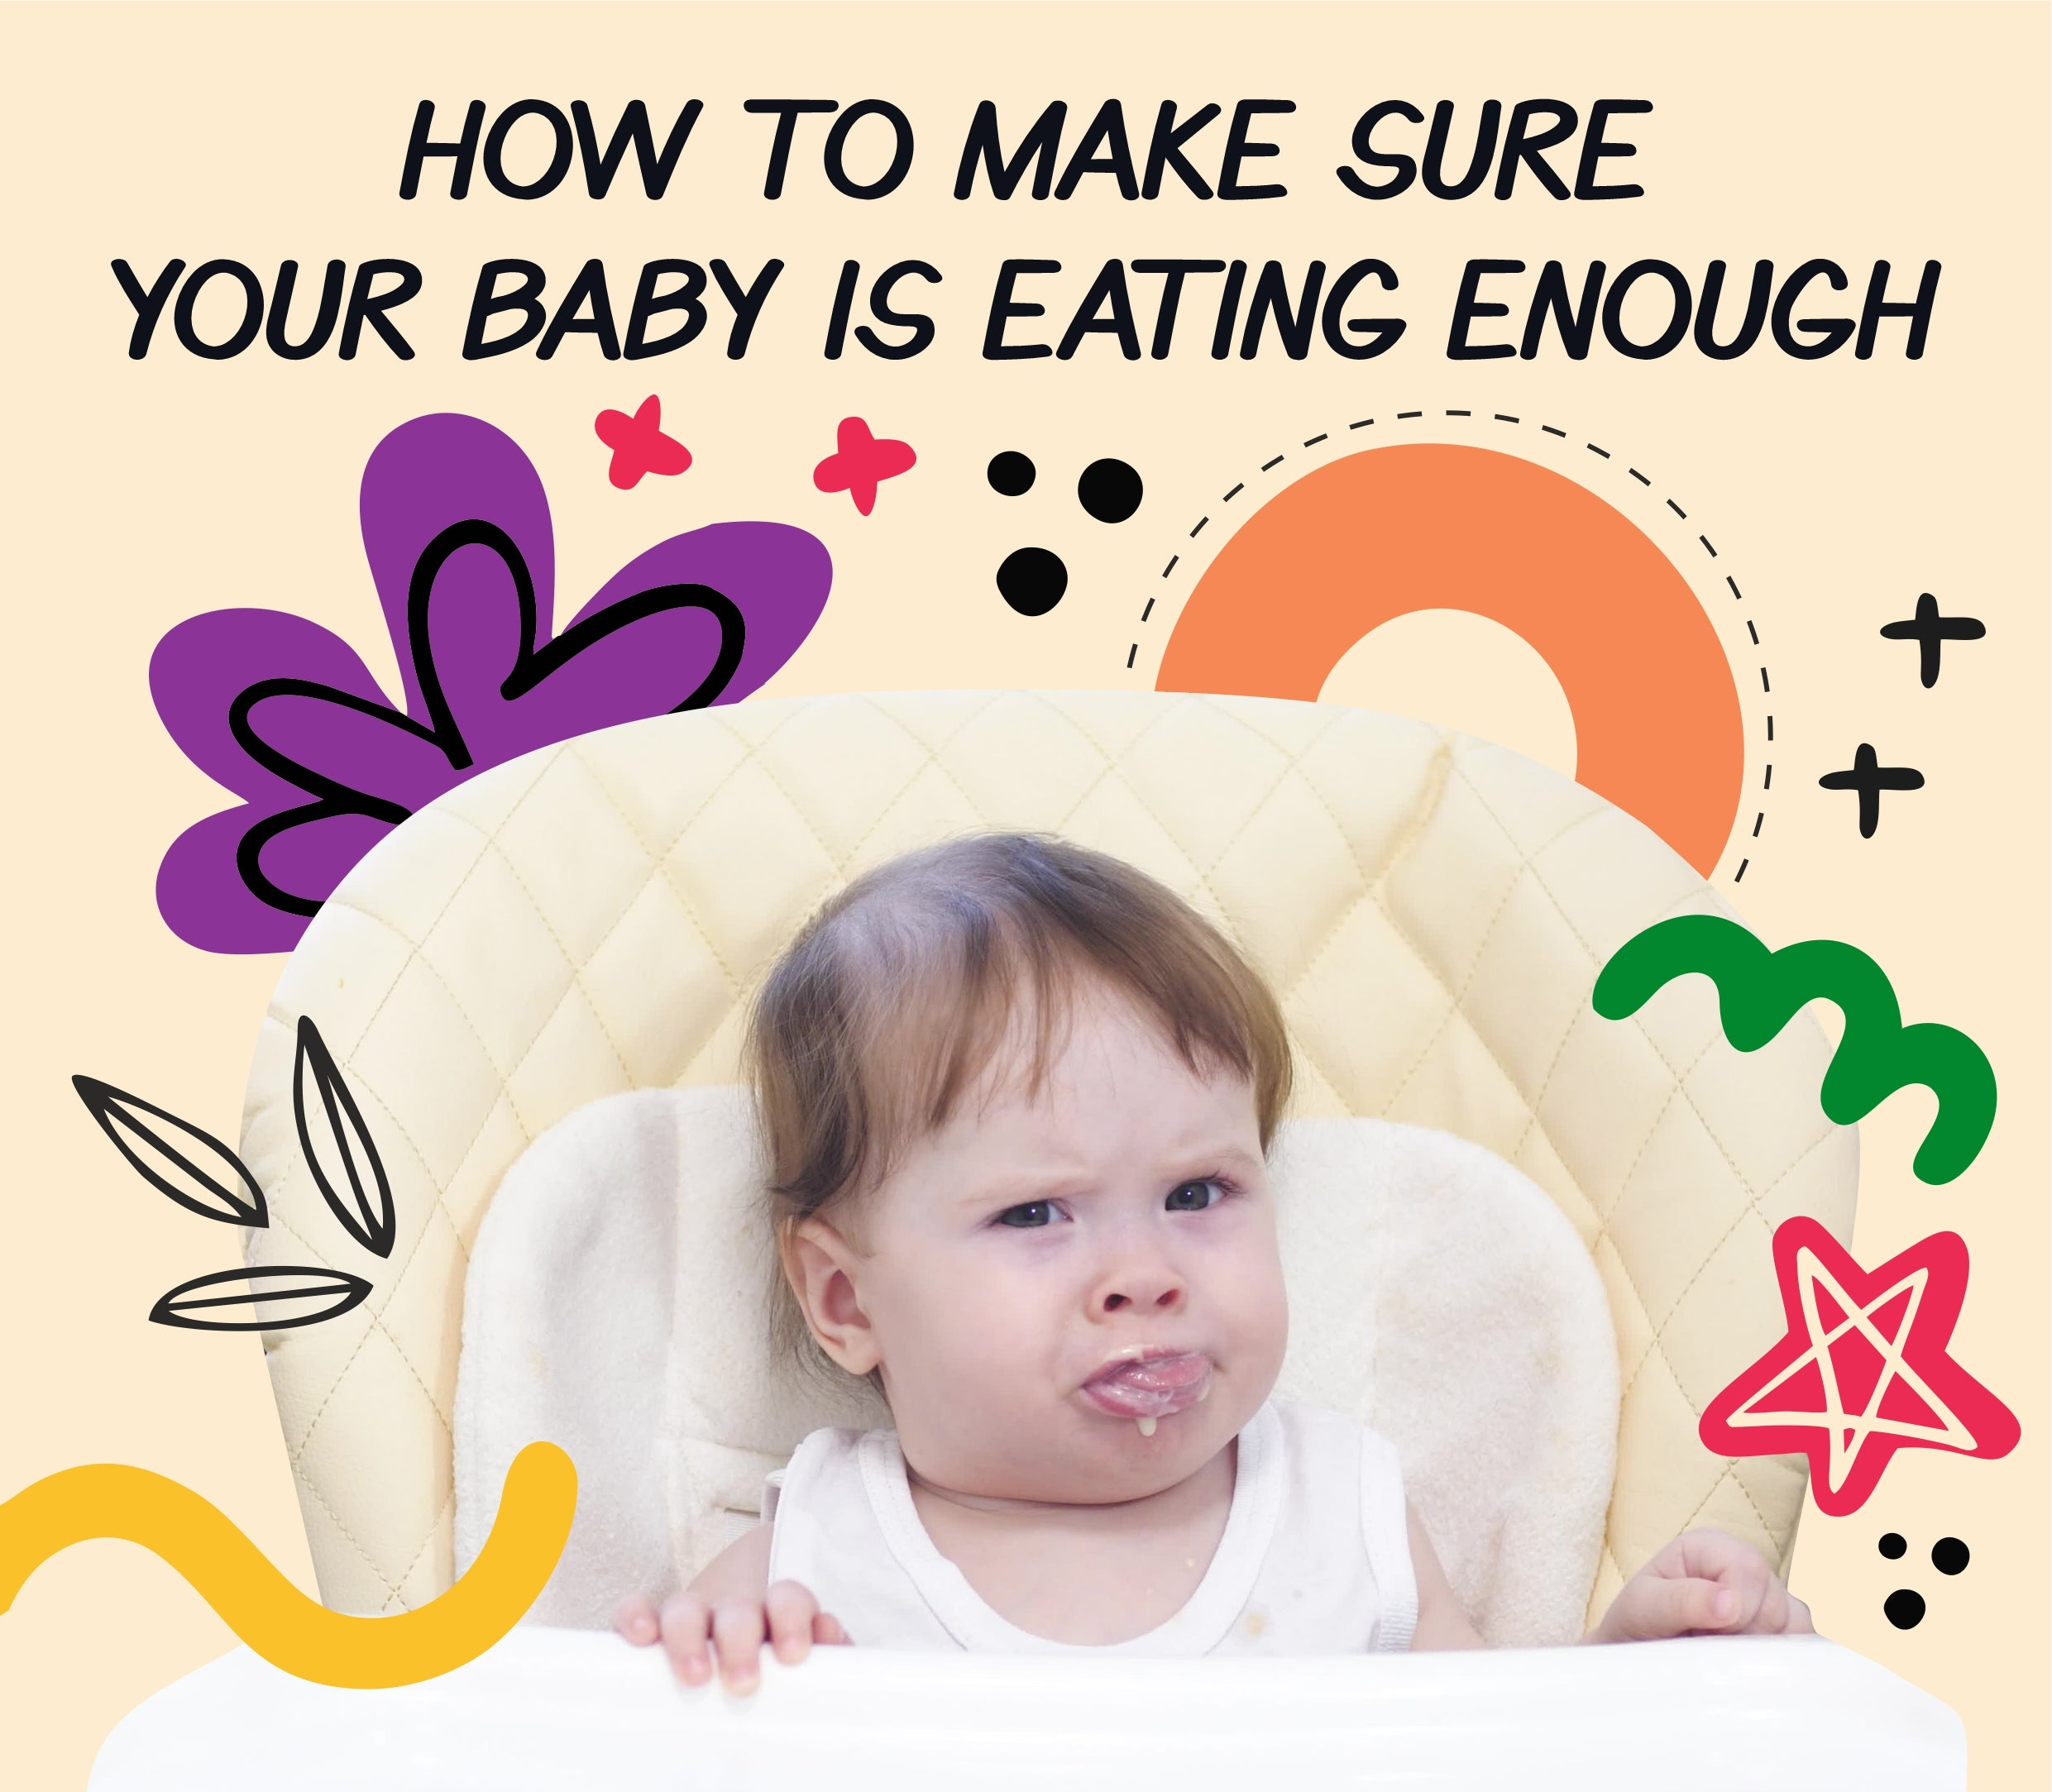 How to make sure your baby is eating enough